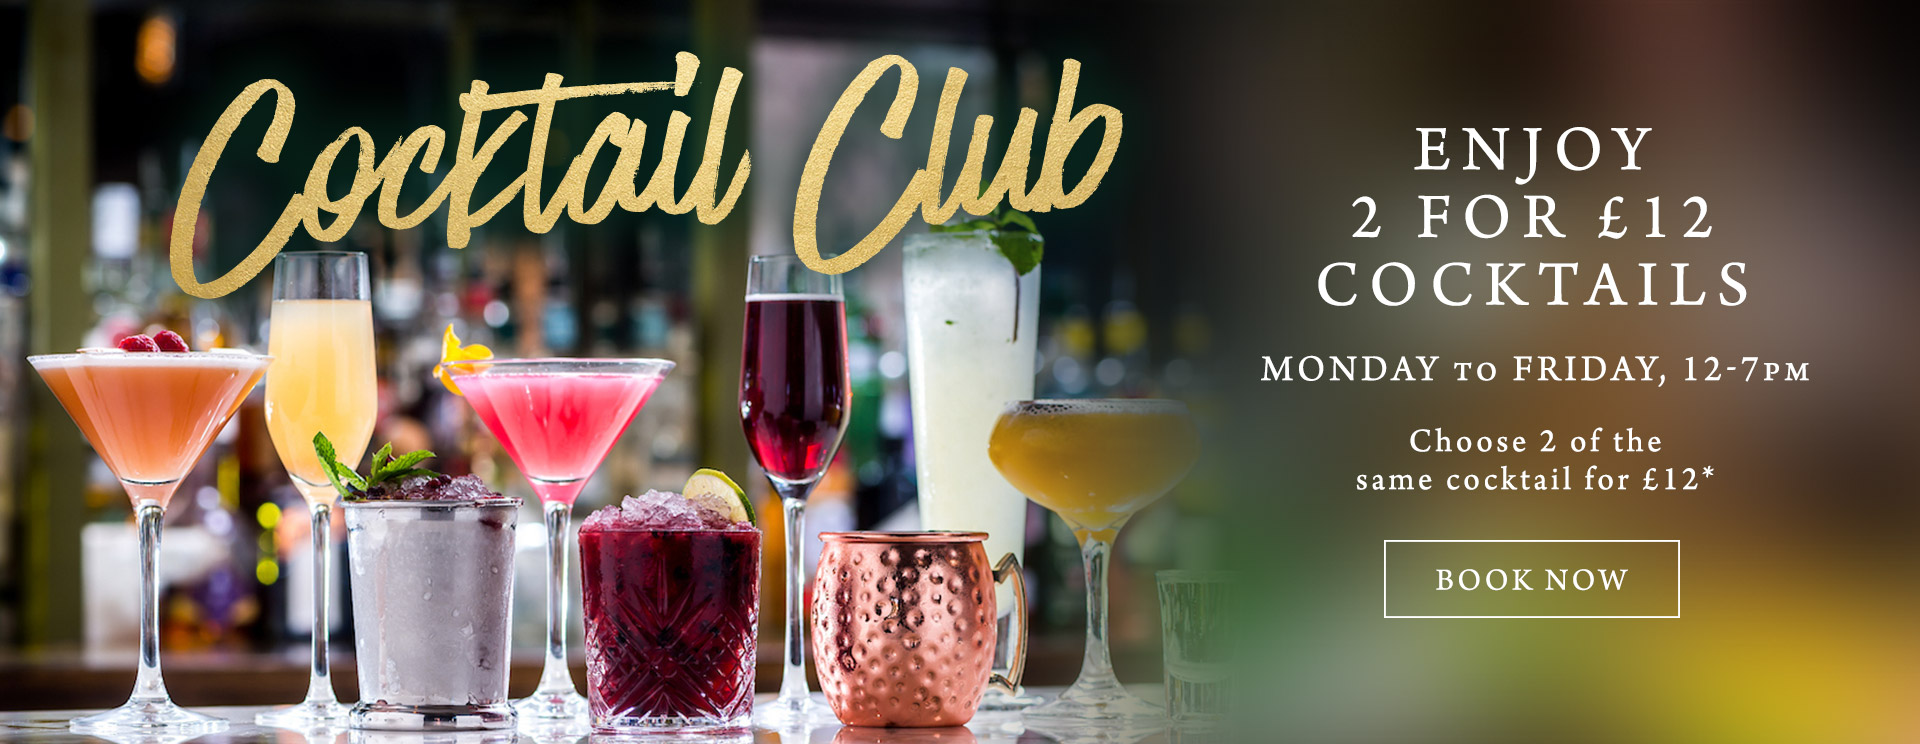 2 for £12 cocktails at The Minnow